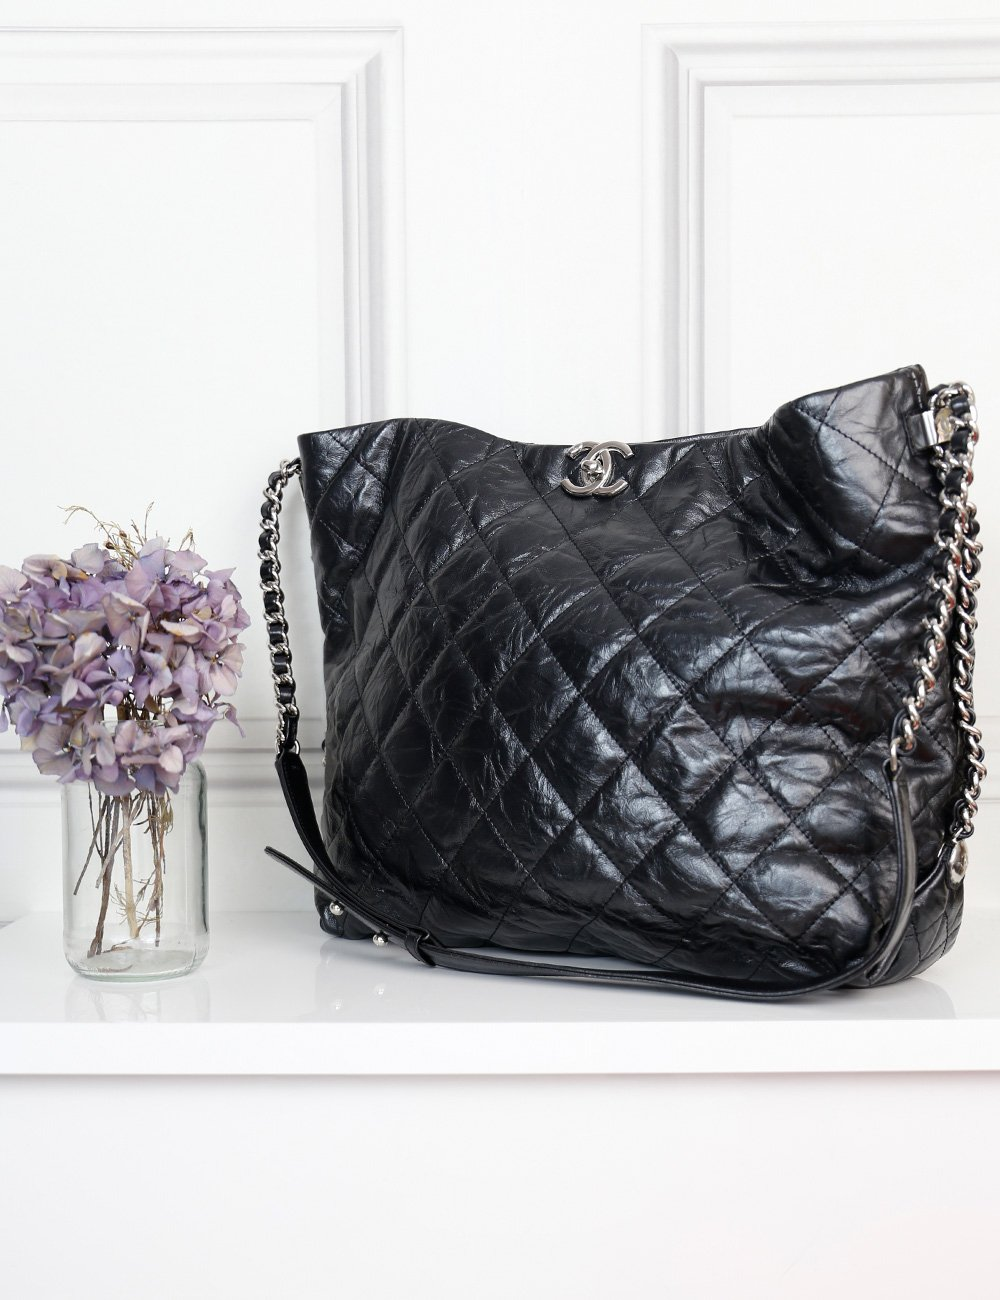 Chanel black Big Bang large hobo bag- My Wardrobe Mistakes